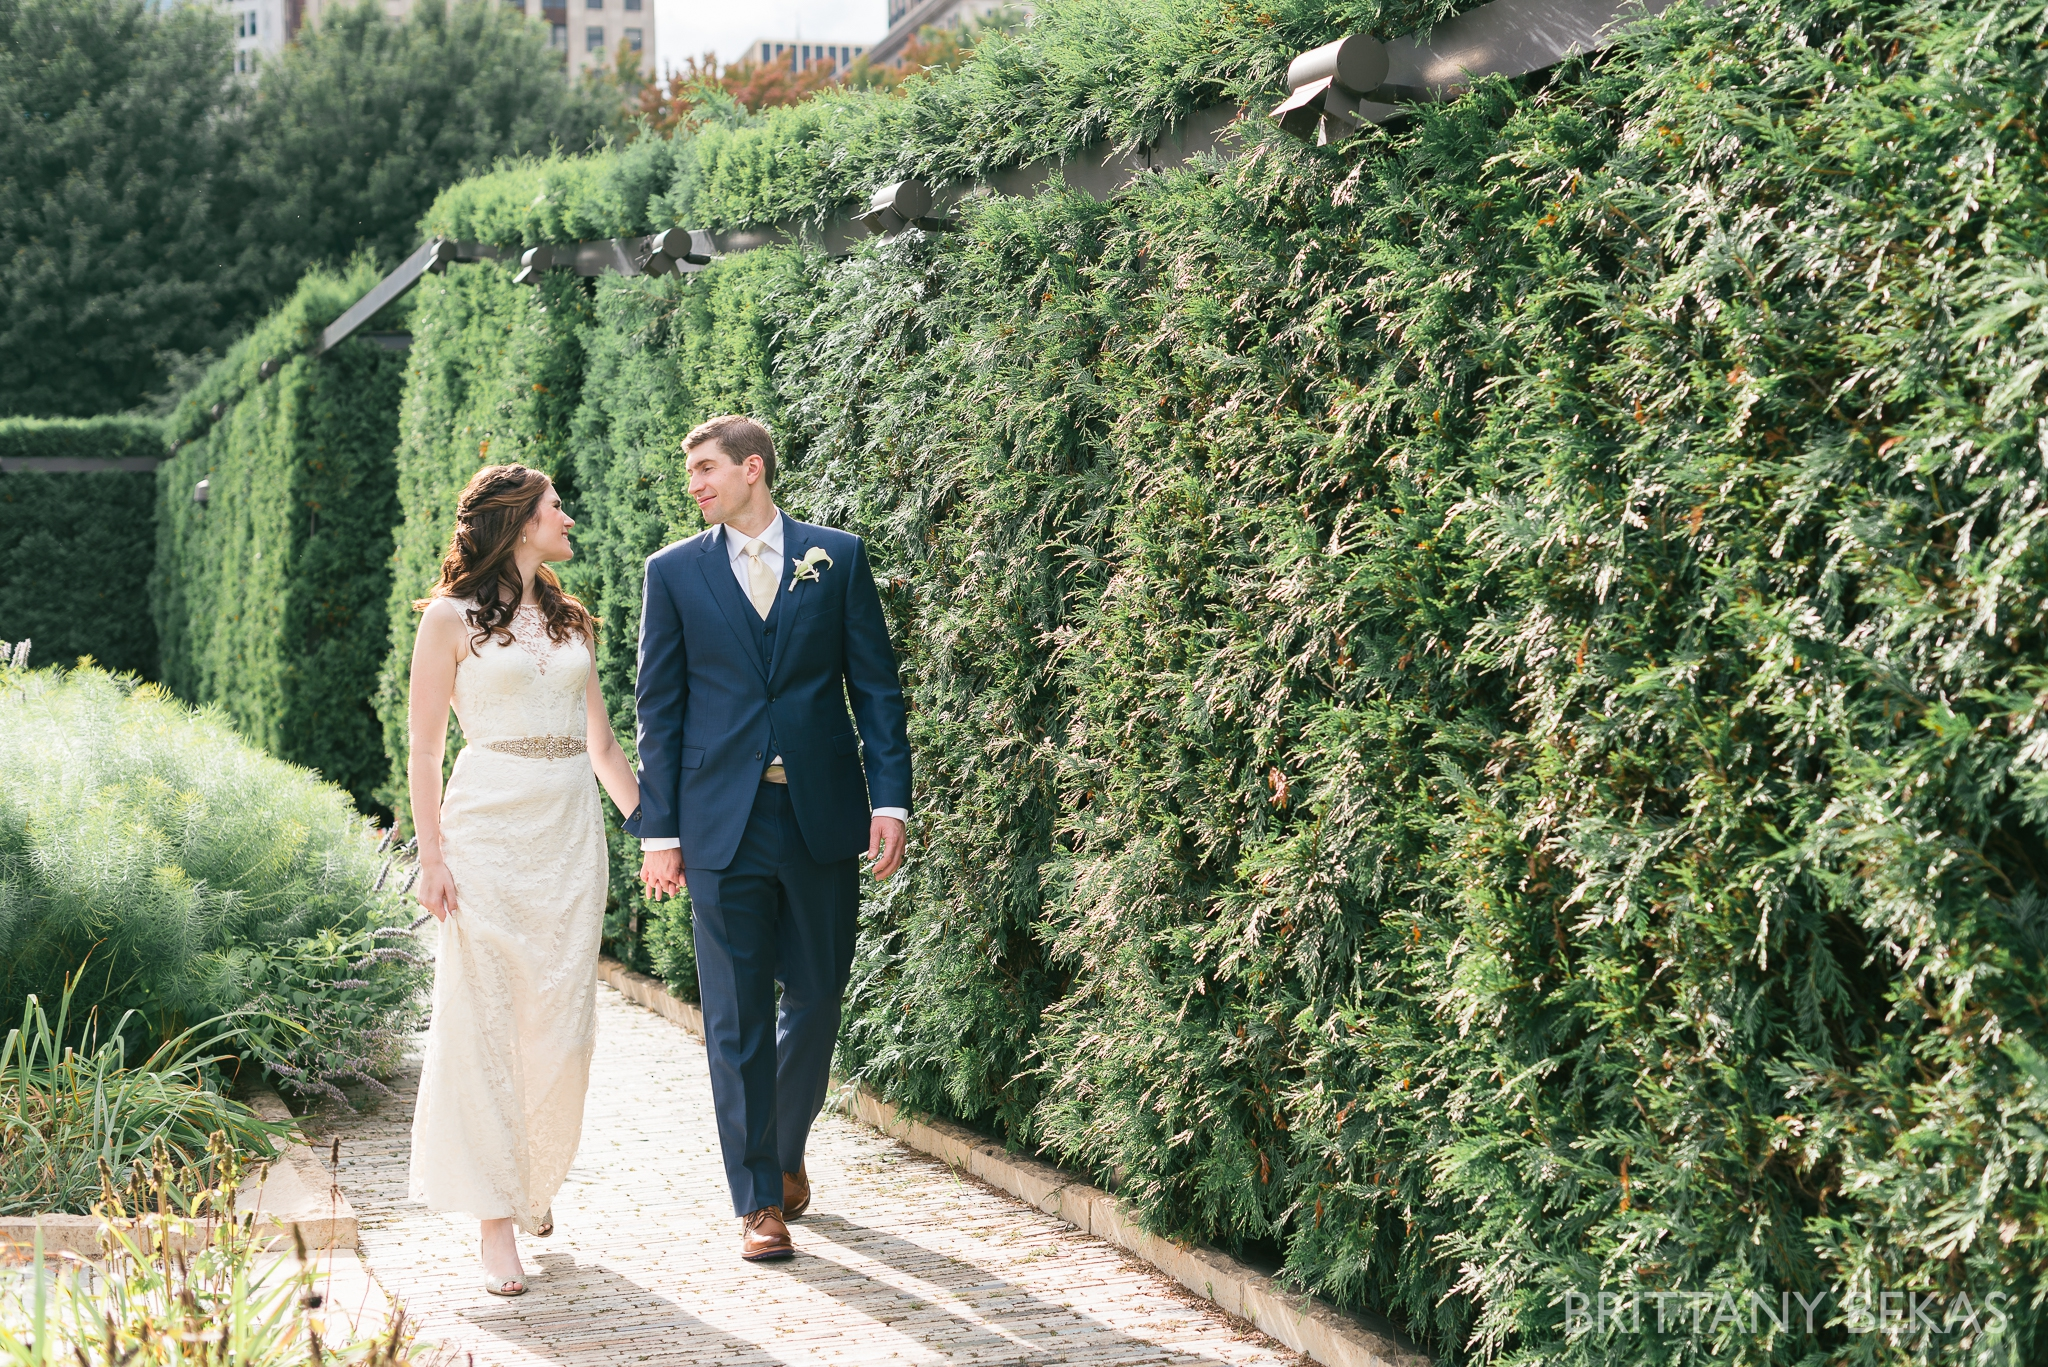 Chicago Wedding Photos Osteria Via Stato - Brittany Bekas Photography_0027